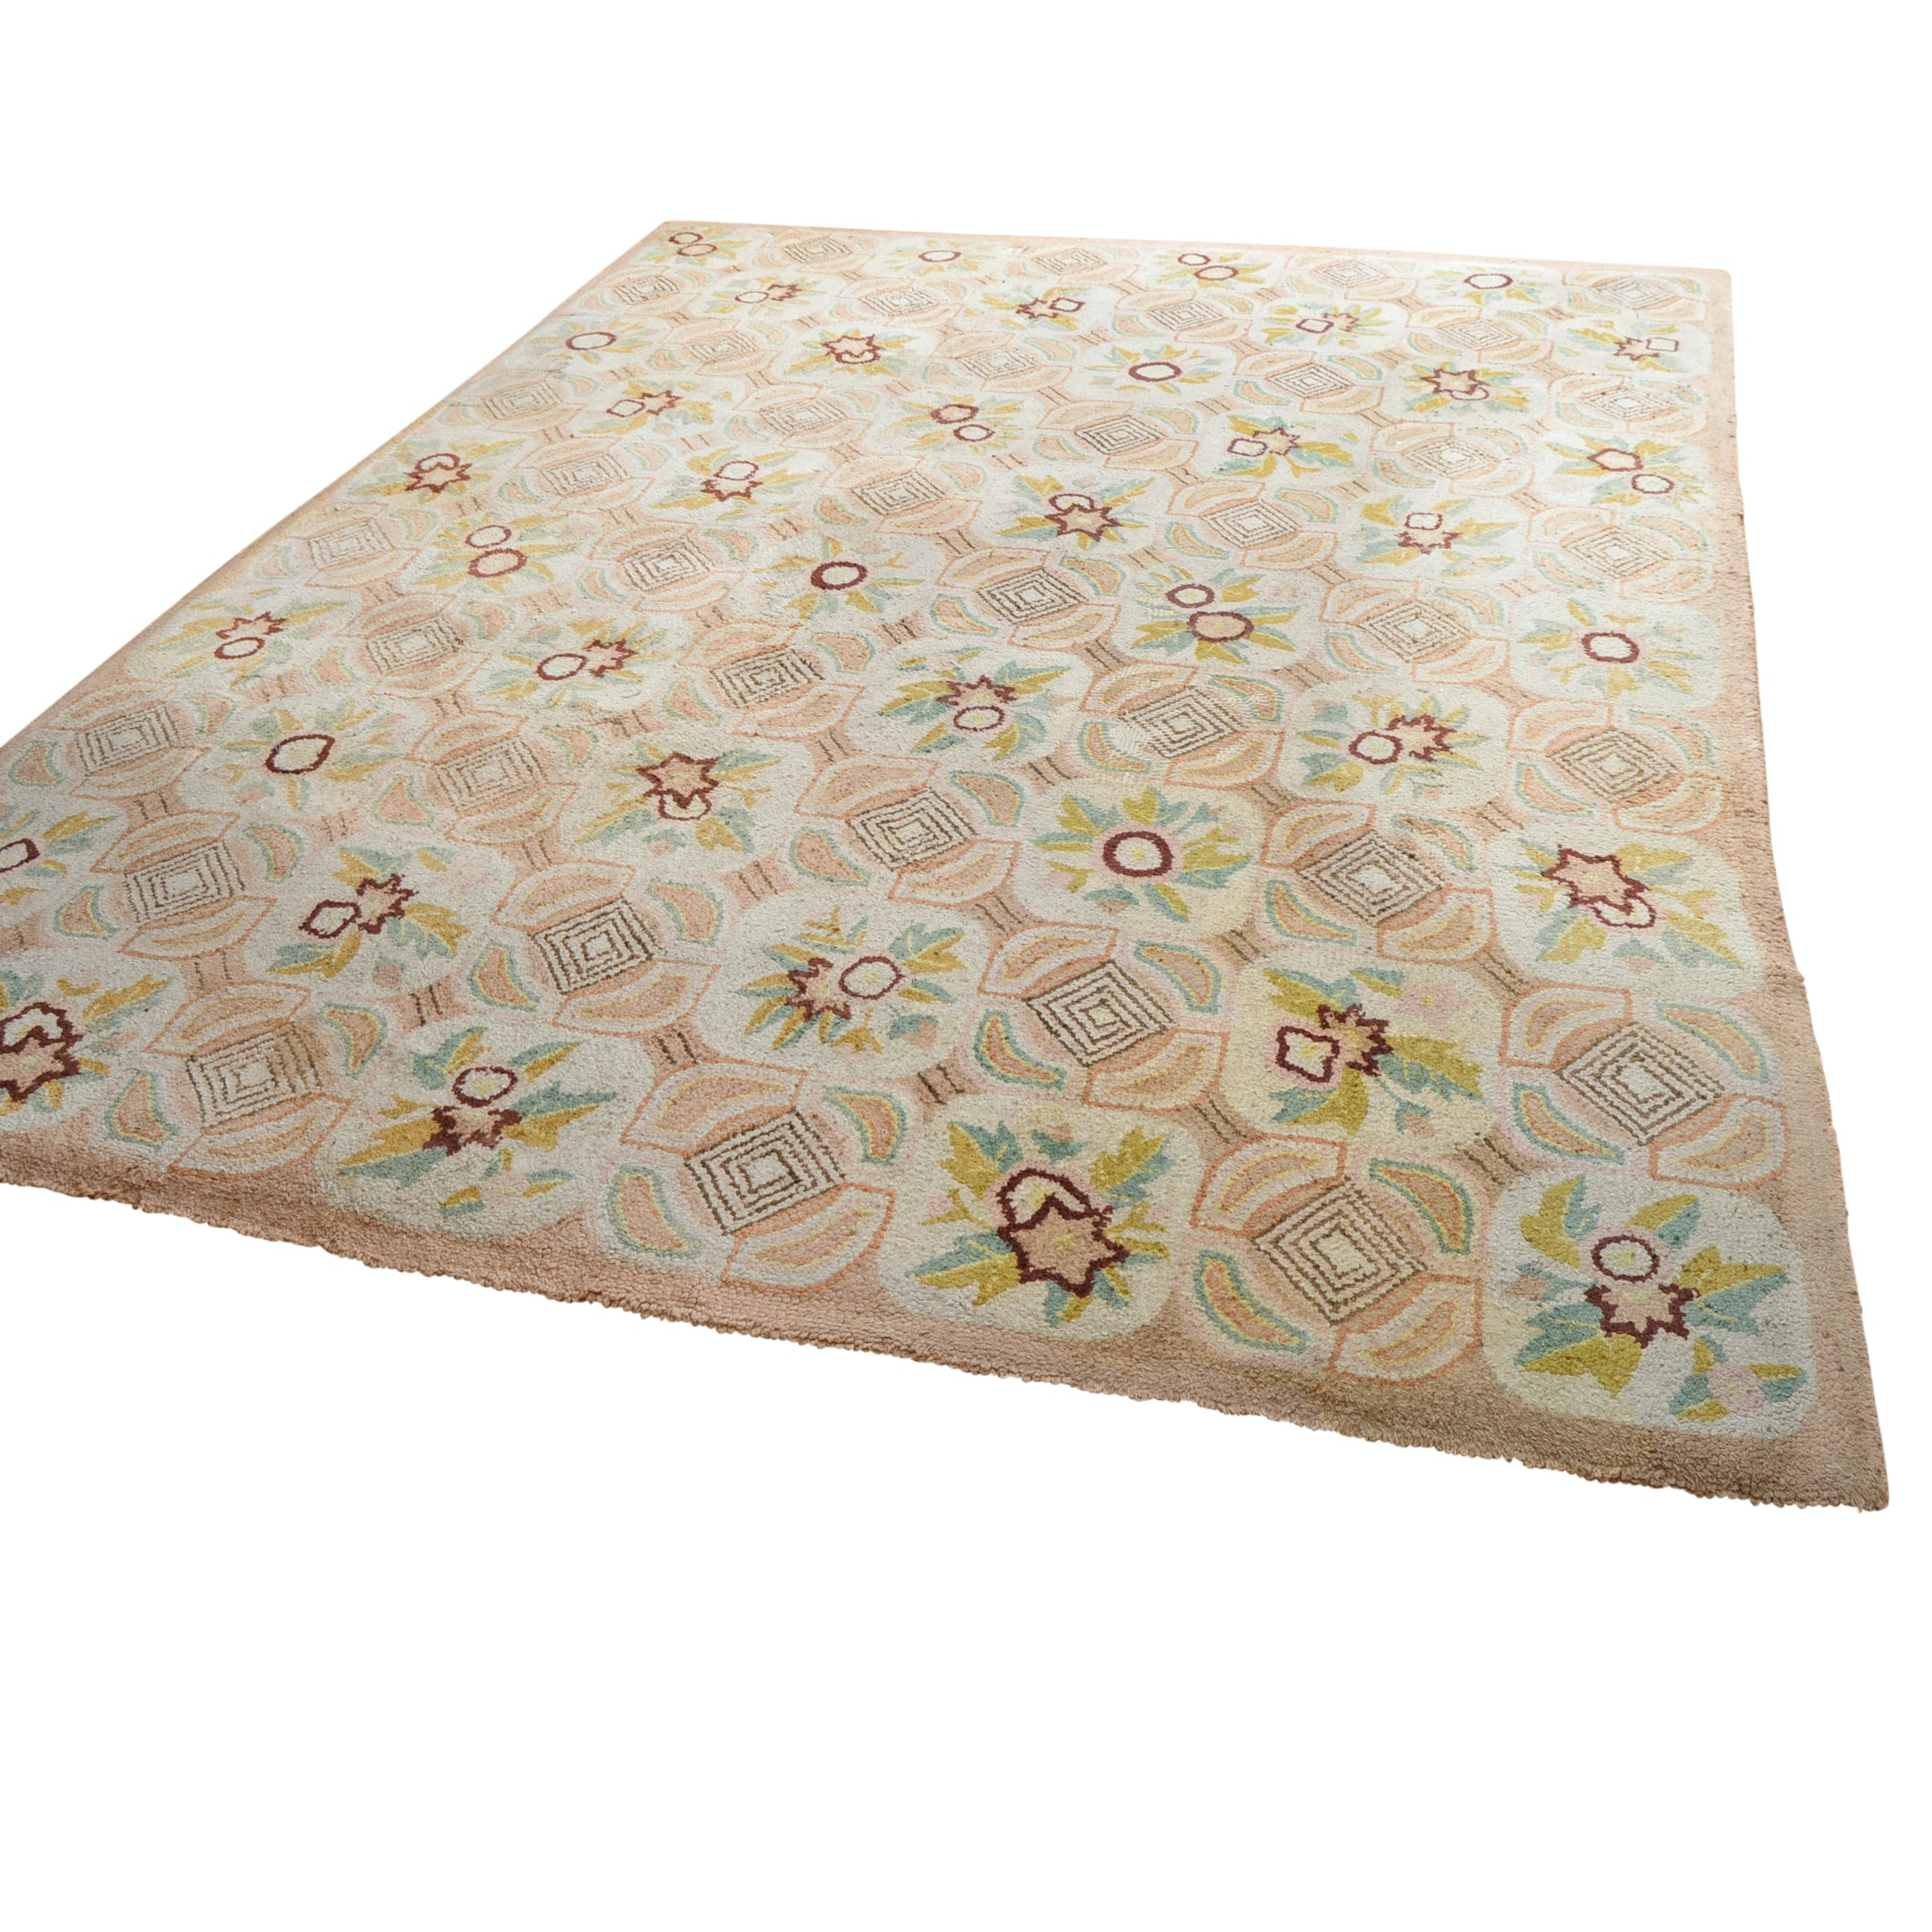 Antique Hooked Area Rug